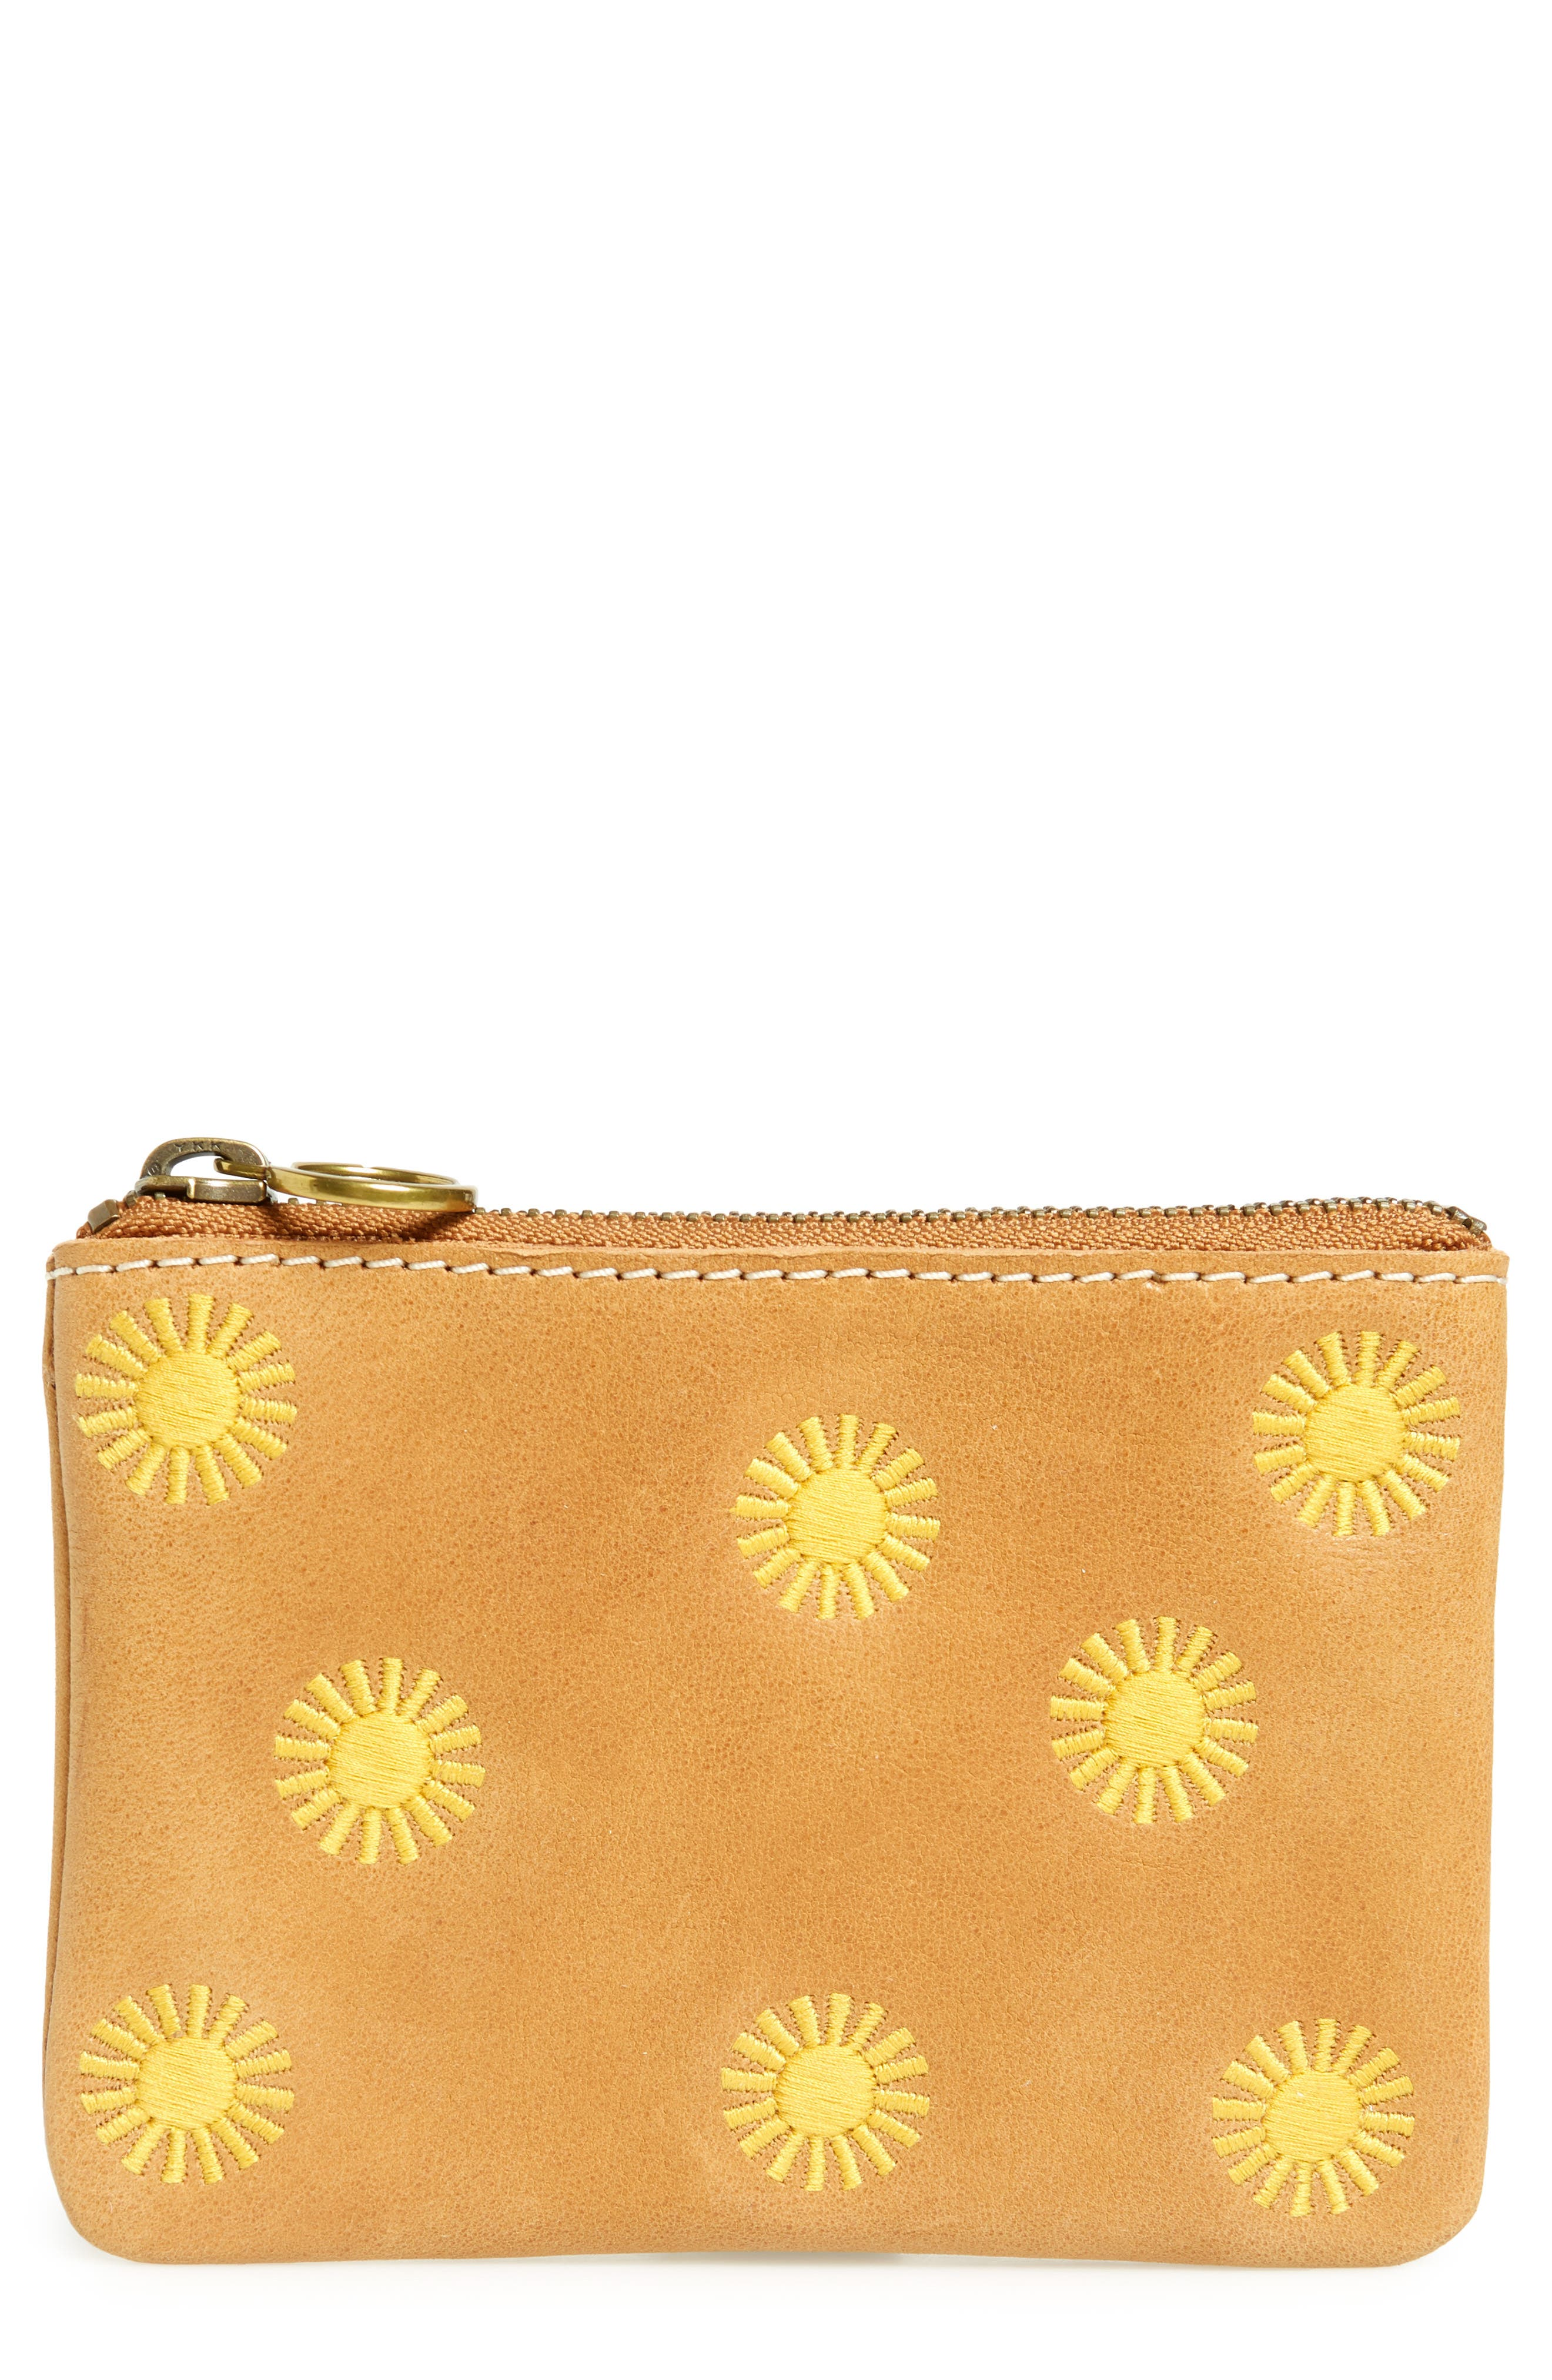 Sun Embroidered Small Flat Zip Pouch,                         Main,                         color, 200